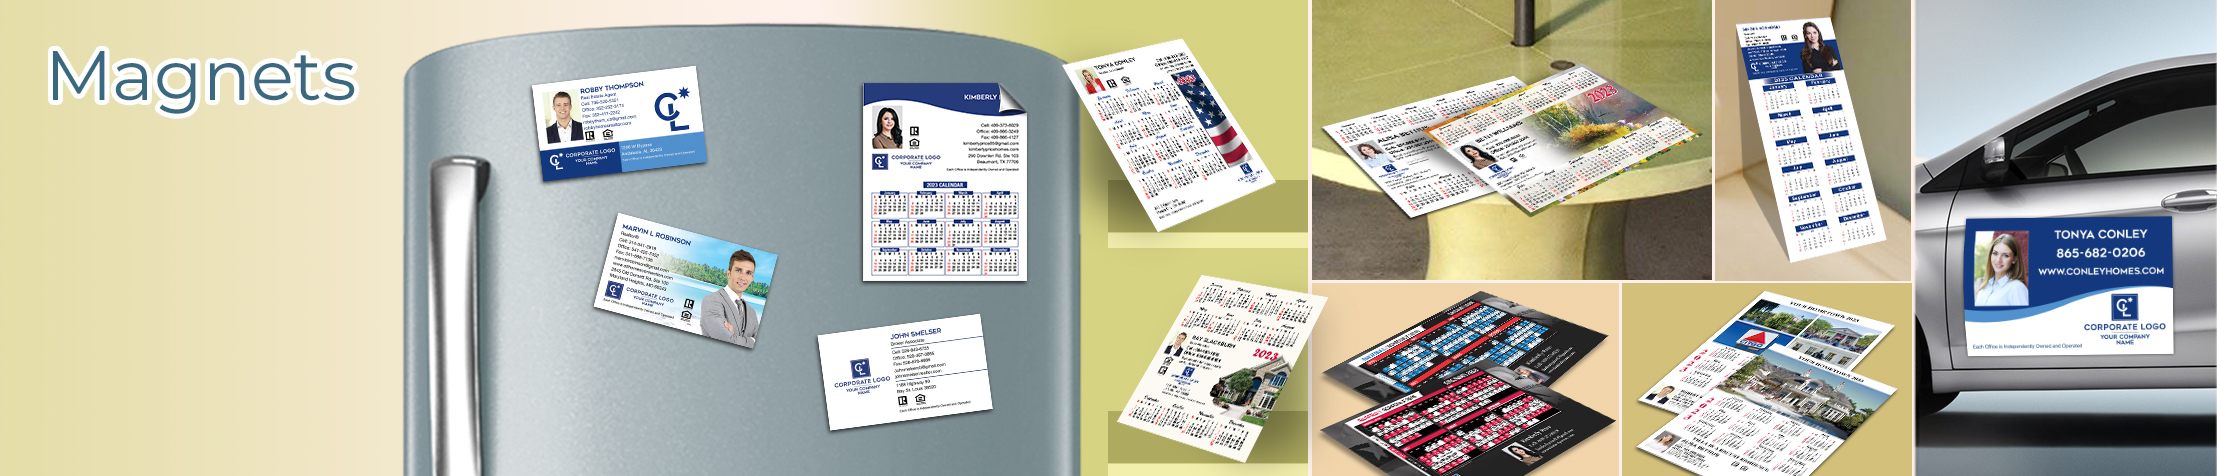 Coldwell Banker Real Estate Magnets - Coldwell Banker car magnets, sports schedules, calendar magnets | BestPrintBuy.com